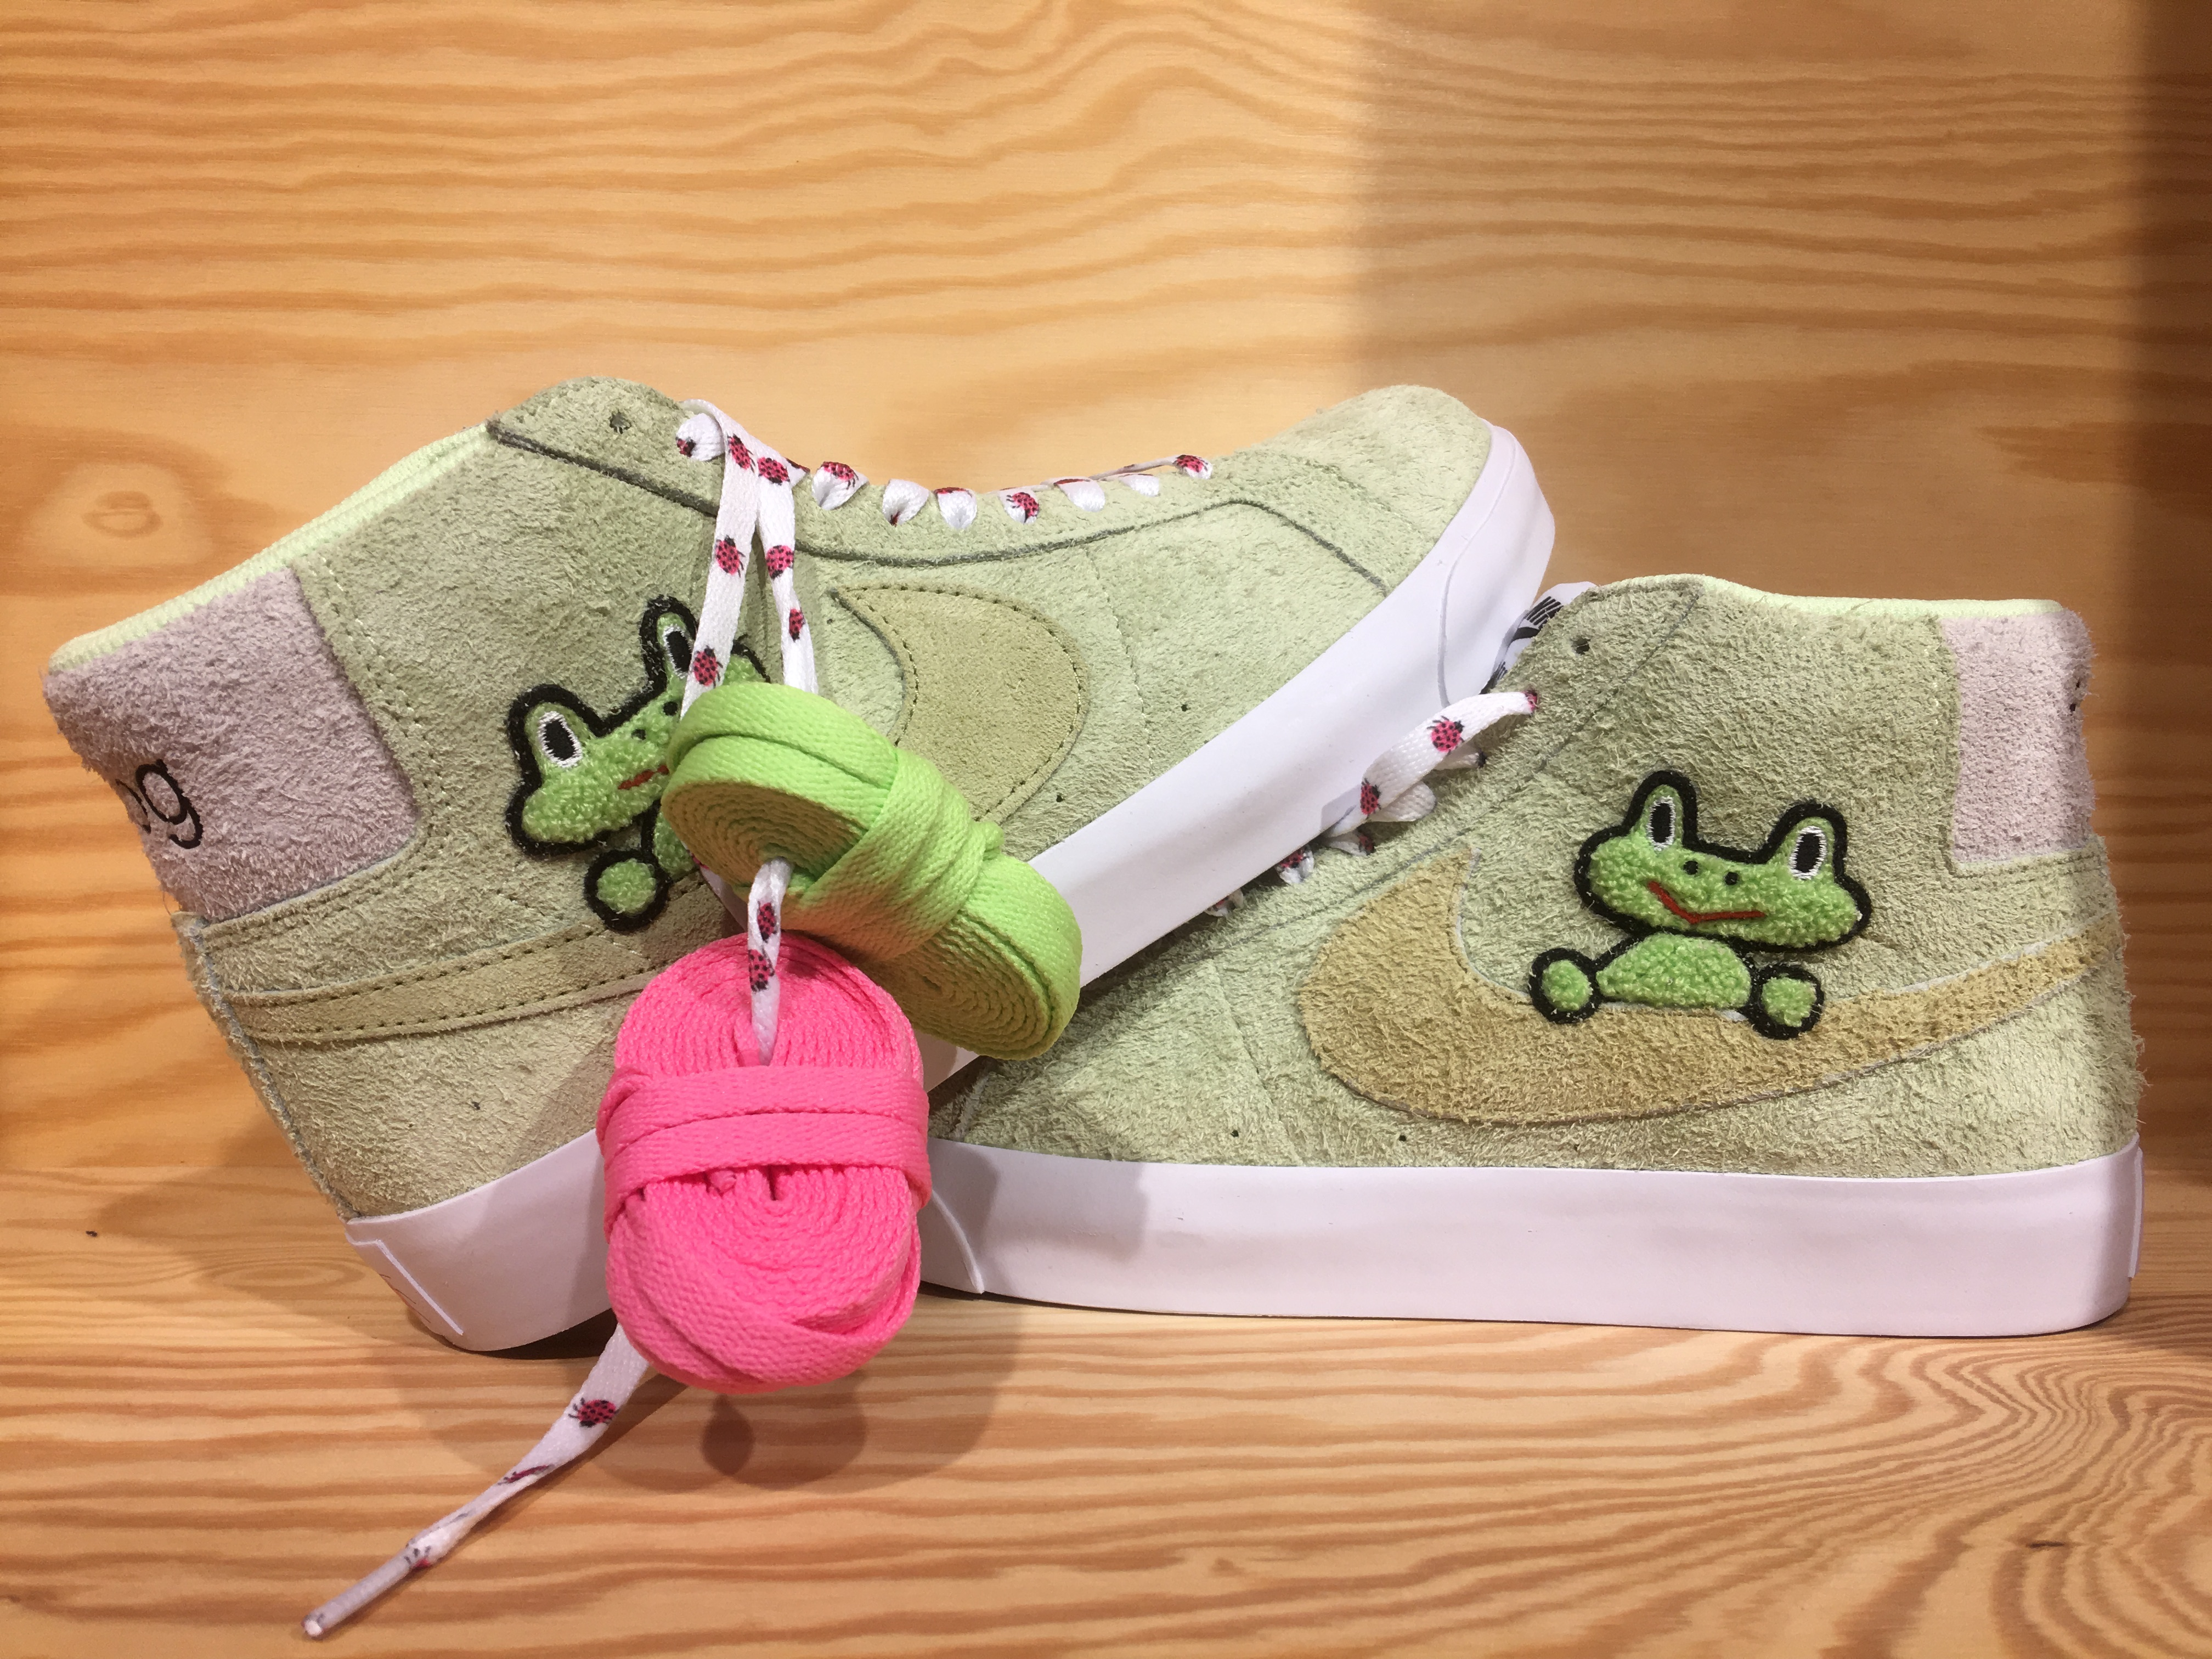 lowest price reasonably priced on wholesale Frog skateboarding x Nike SB blazer review – ShreddersLodge.com